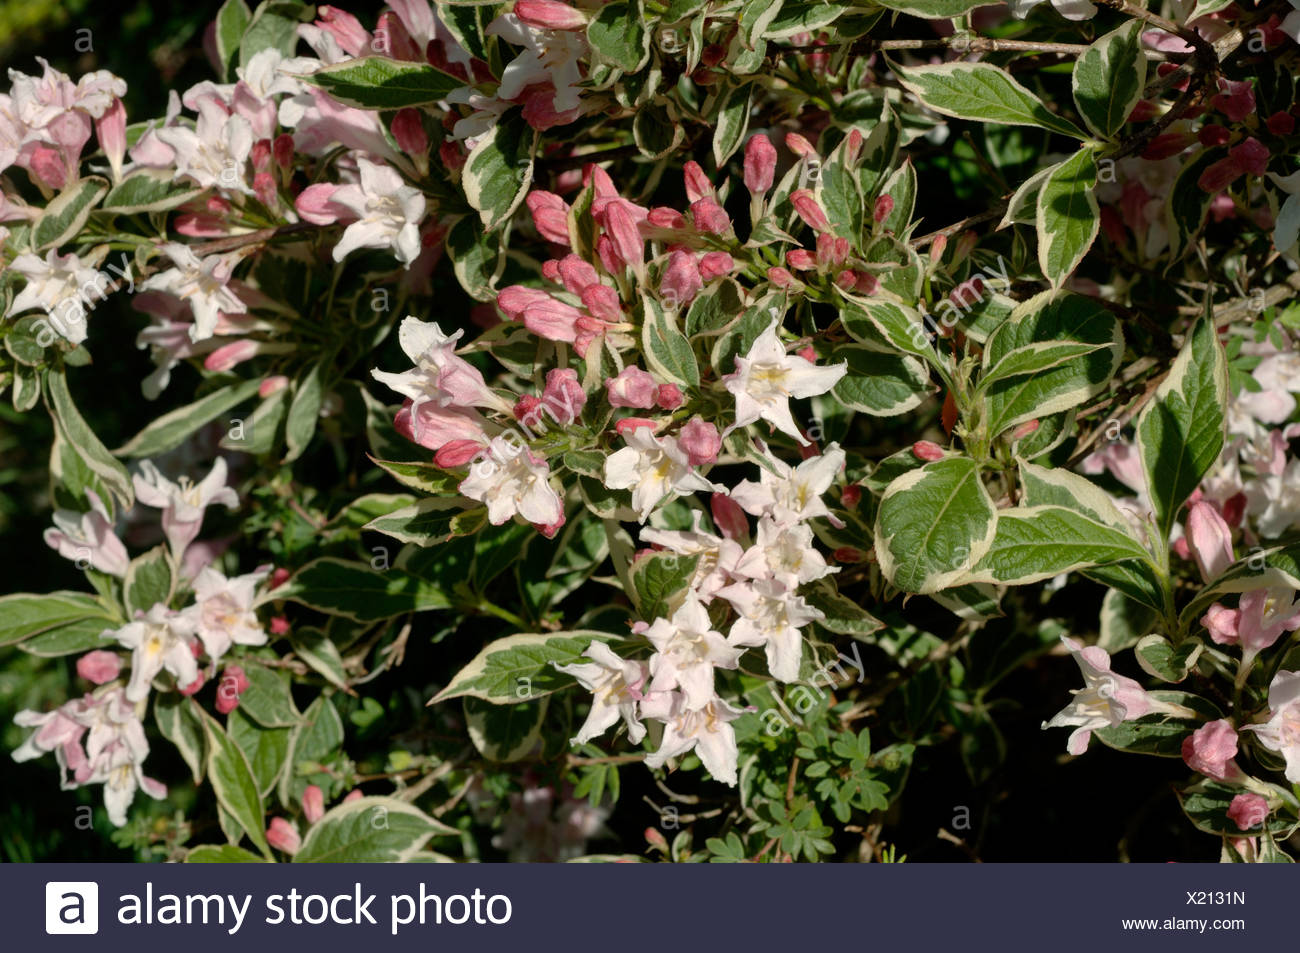 Weigela Florida Variegata Pink White Flowered Shrub With Variegated